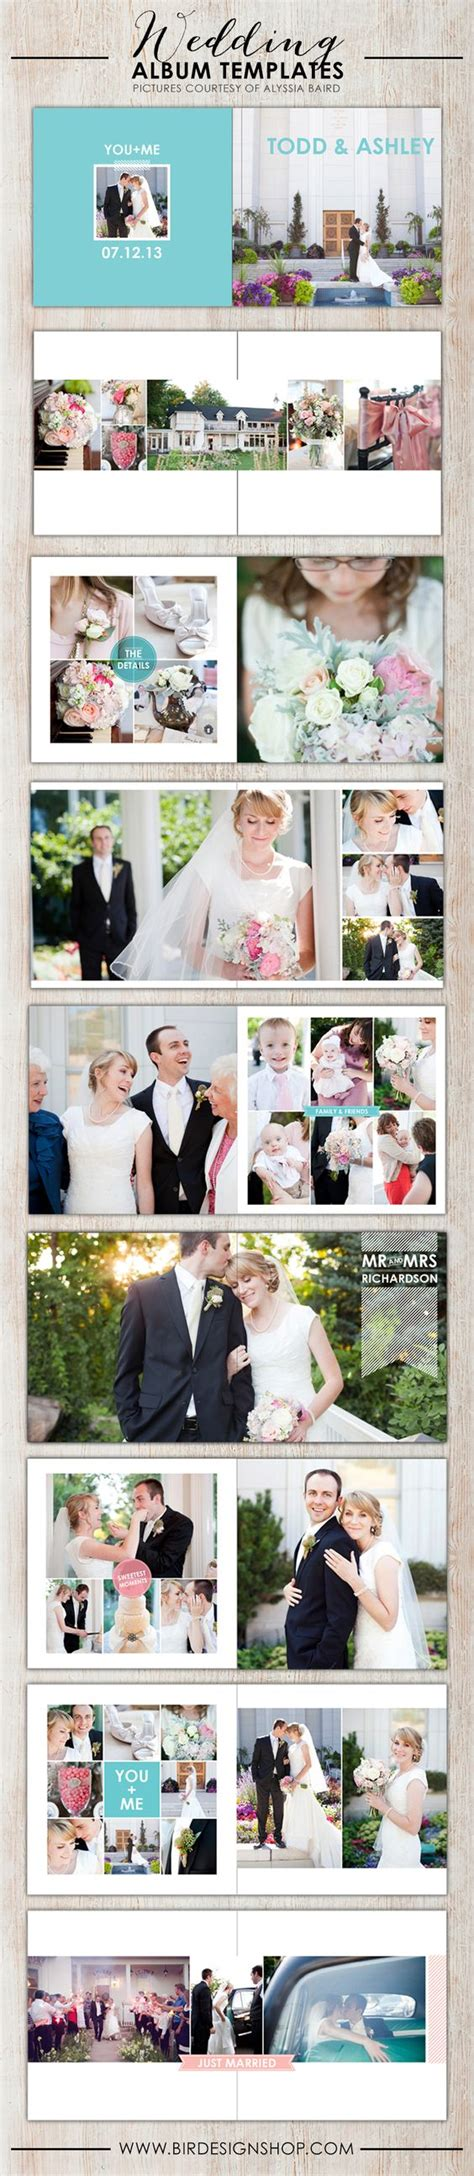 photoshop wedding album templates wedding style and wedding album layout on